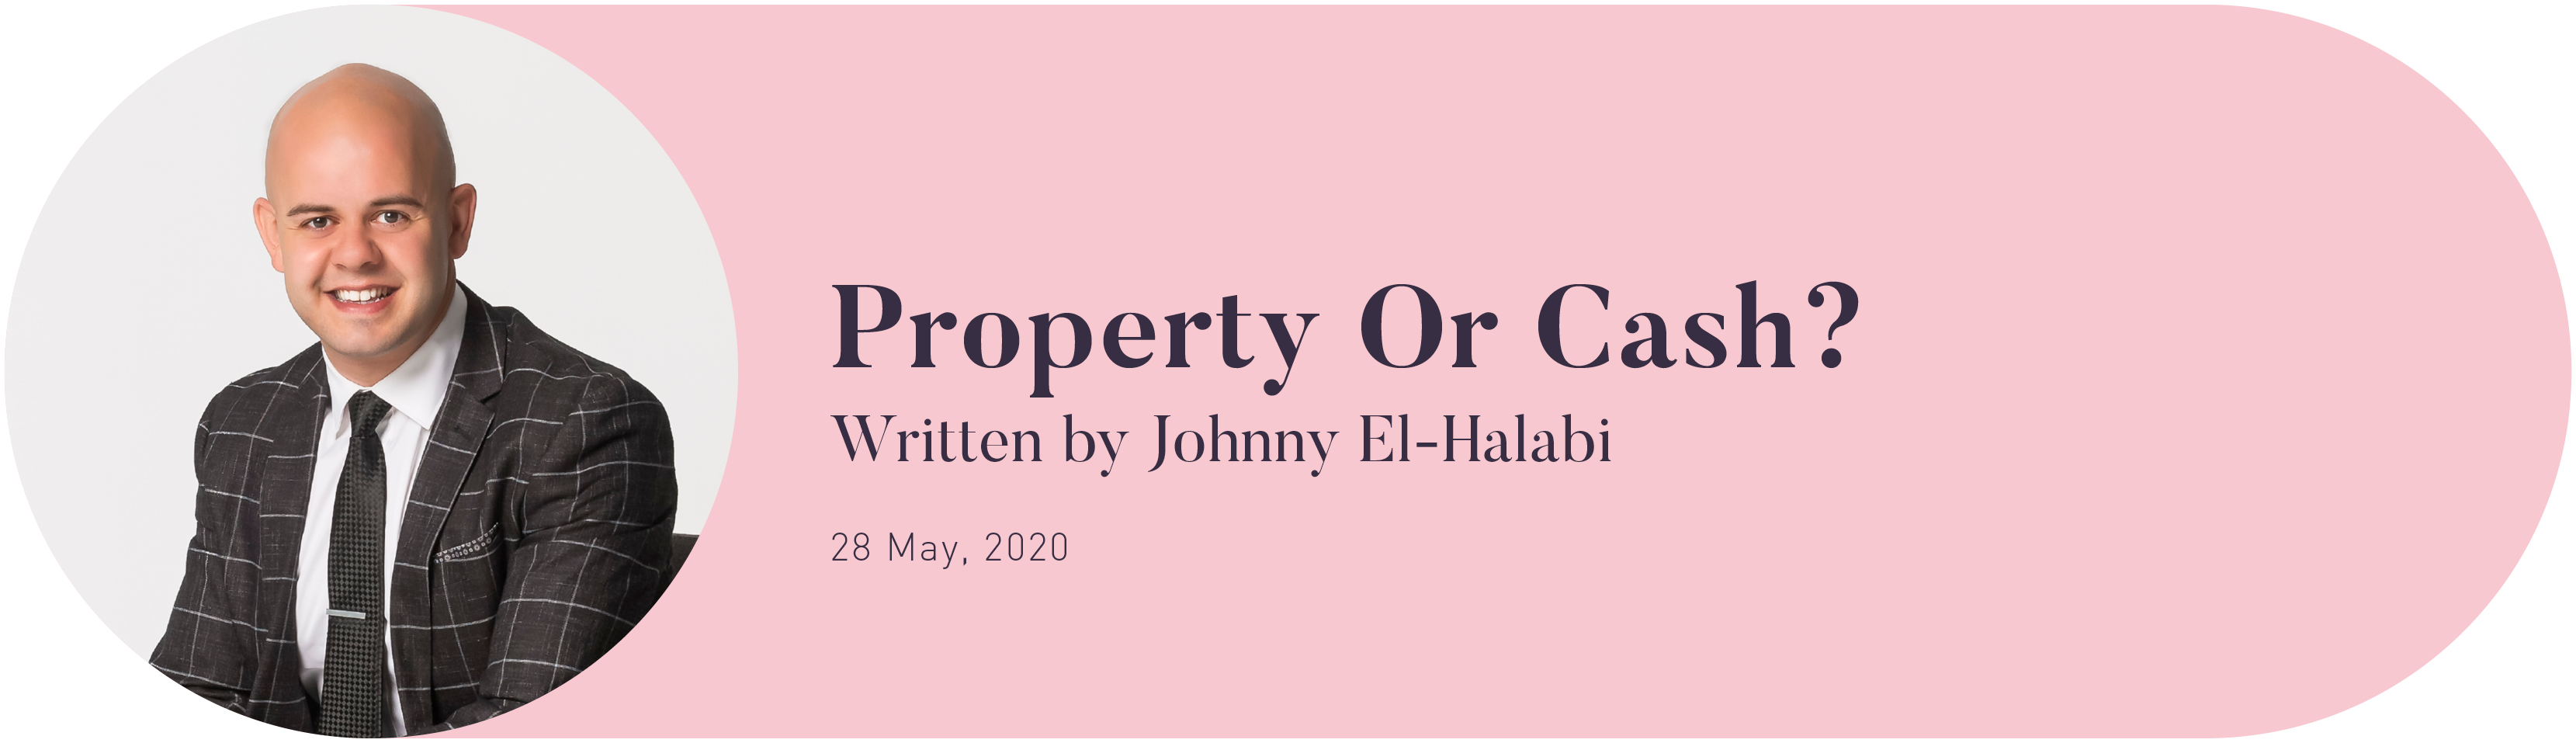 Property Or Cash